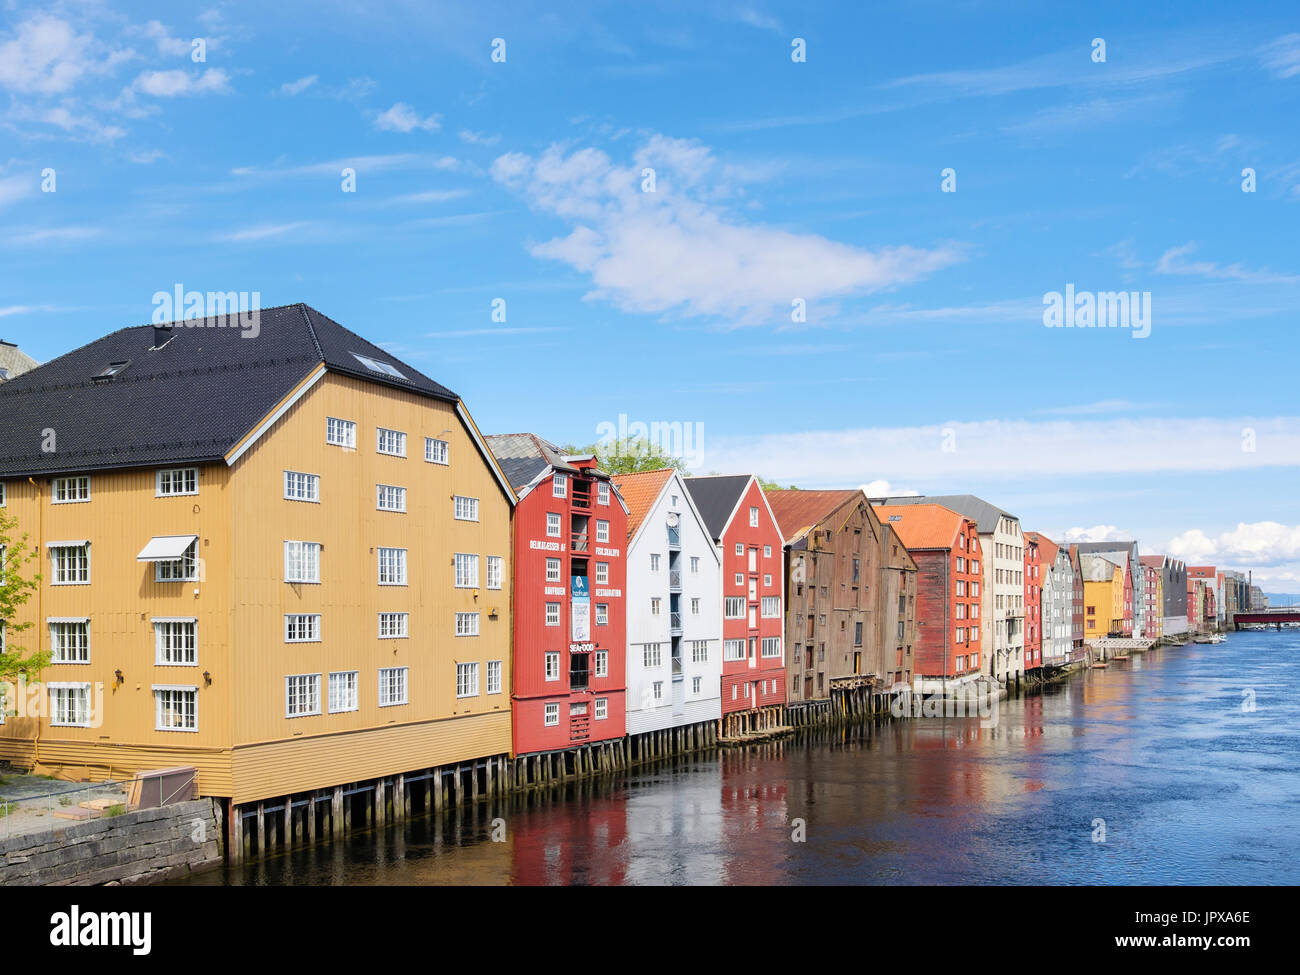 Colourful historic wooden warehouse buildings on stilts on River Nidelva waterfront in old town in summer. Trondheim Norway Scandinavia - Stock Image